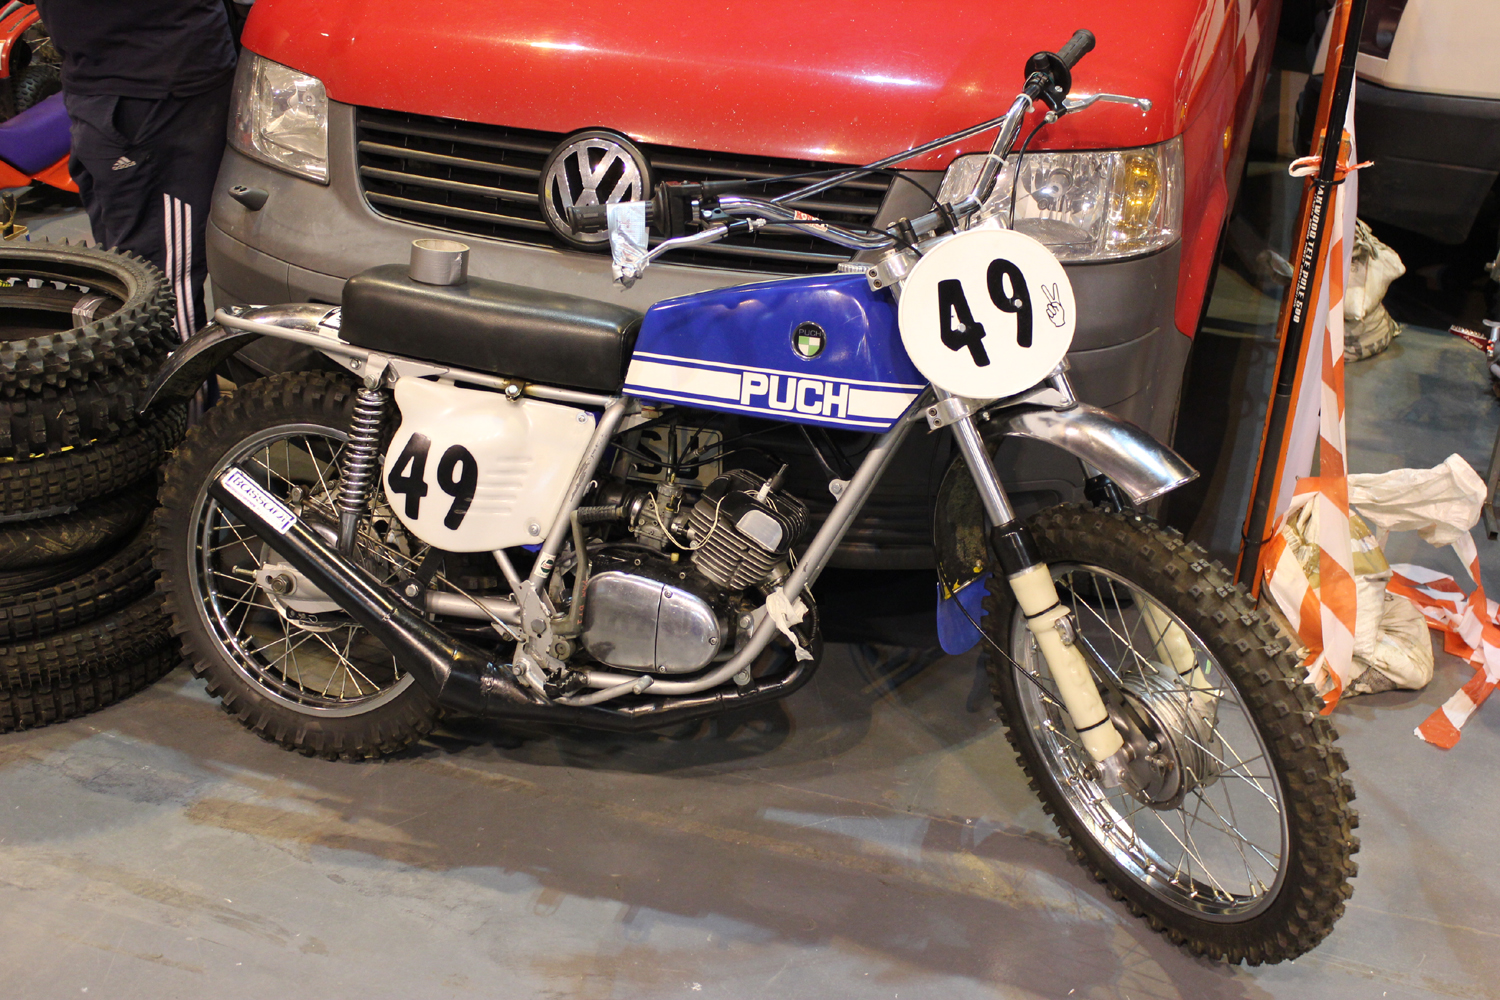 classicdirtbikerider.com-photo by Mr J-2015 Telford classic dirt bike show-CLASSIC PUCH SCRAMBLER